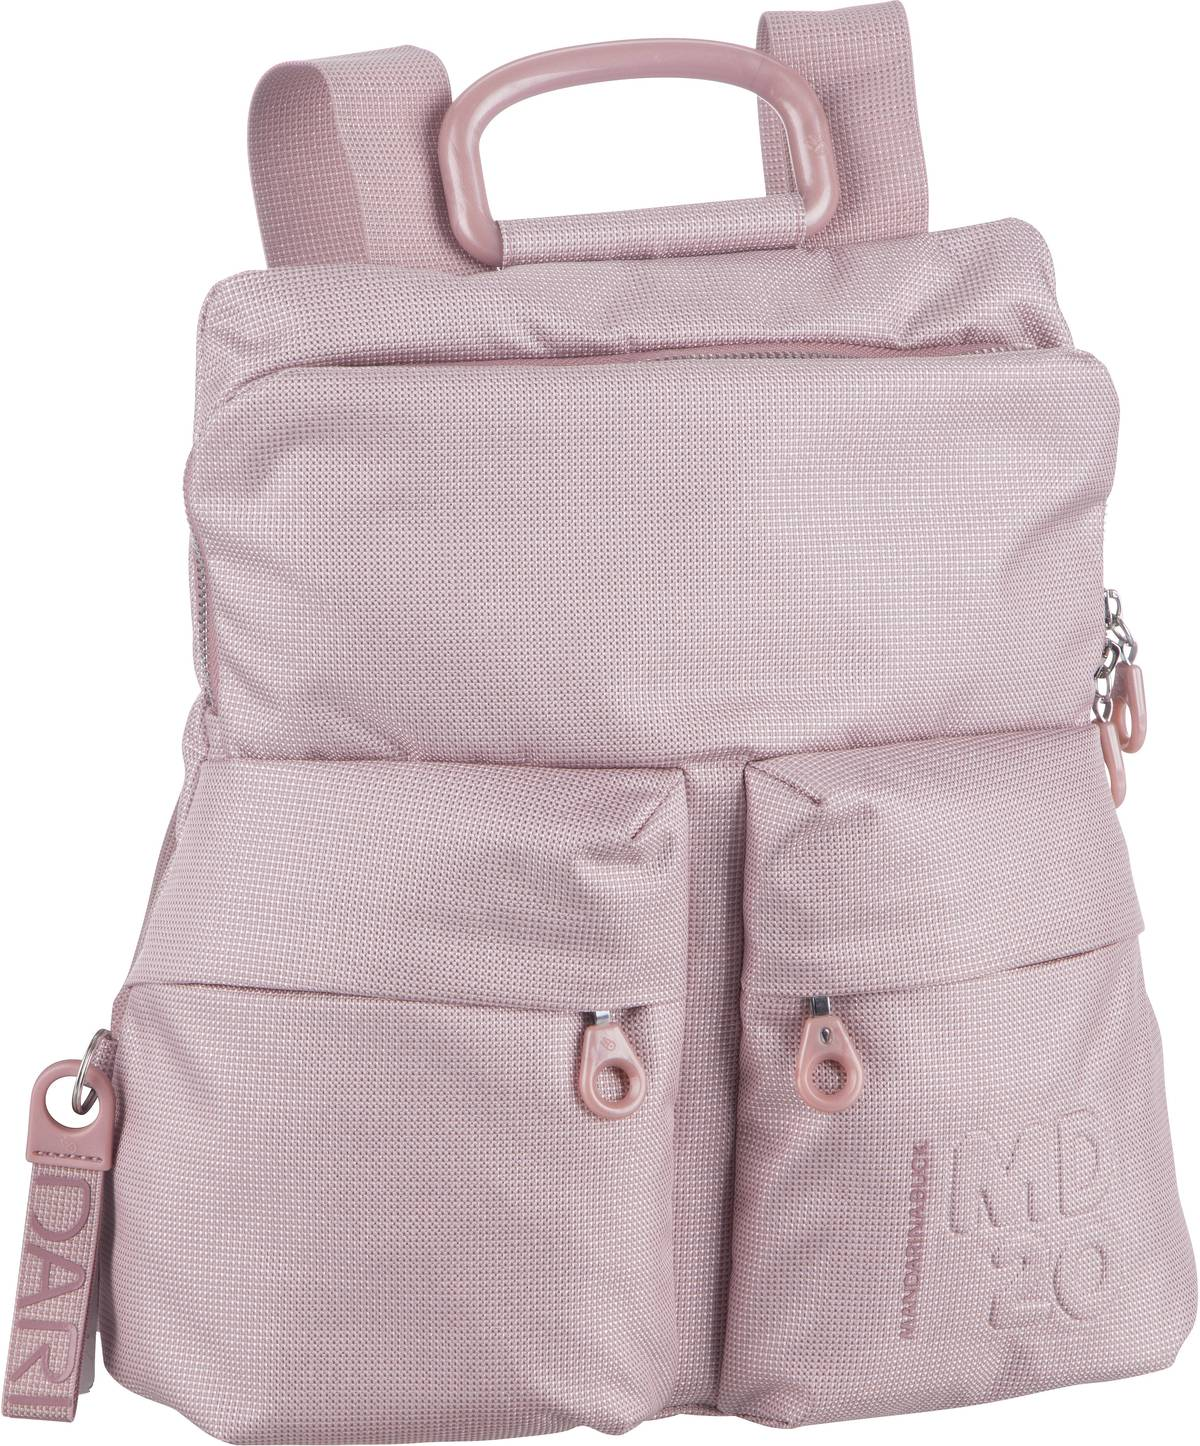 Rucksack / Daypack MD20 Lux Backpack QNTZ4 Magnolia